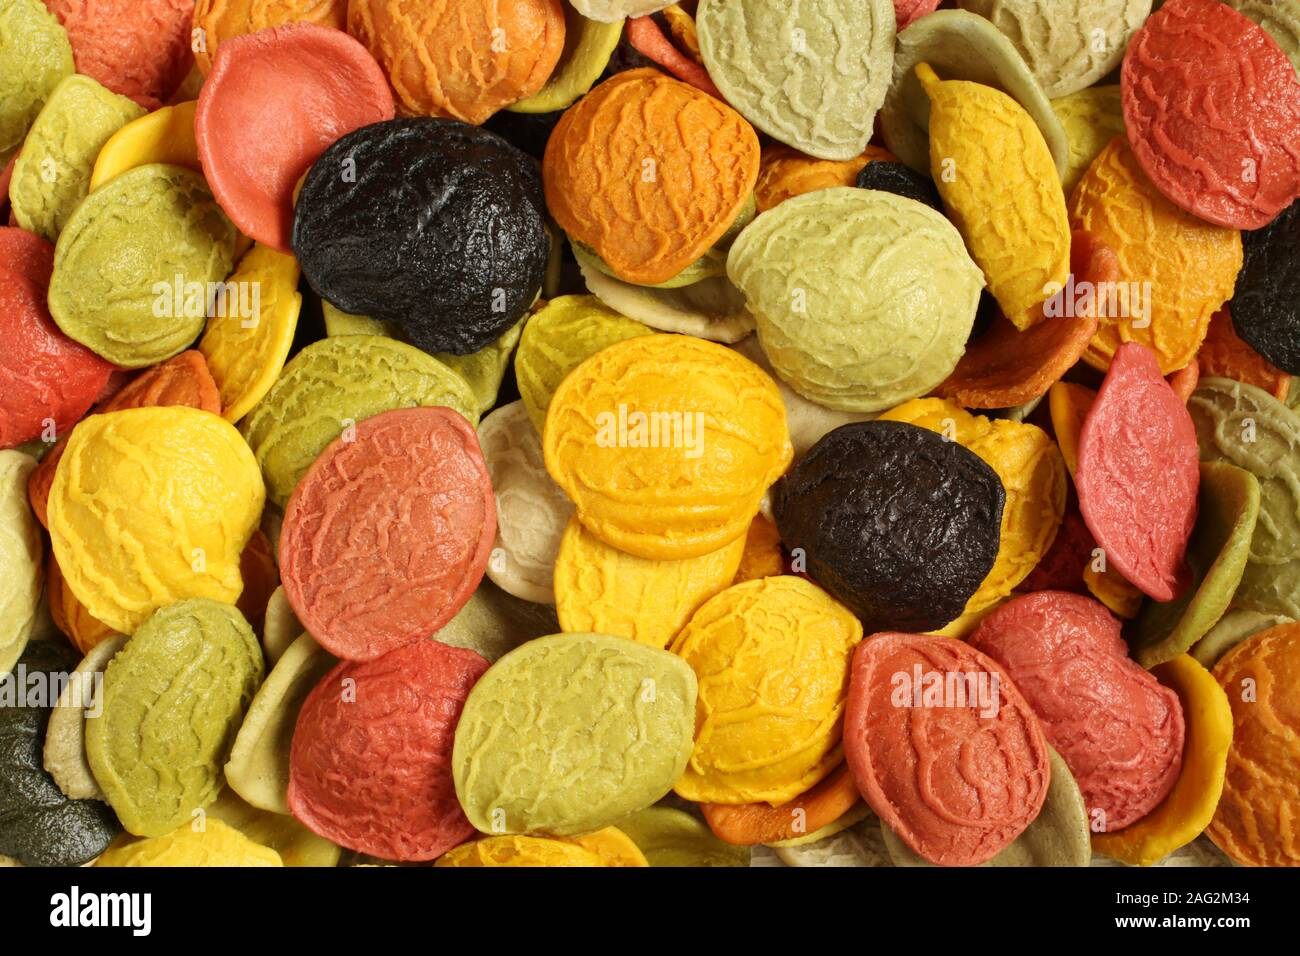 Colorful durum wheat orecchiette pasta with special ingredients: dried carrot, red beet, spinaches, basil, tomatoes, turmeric powder and squid ink. Stock Photo